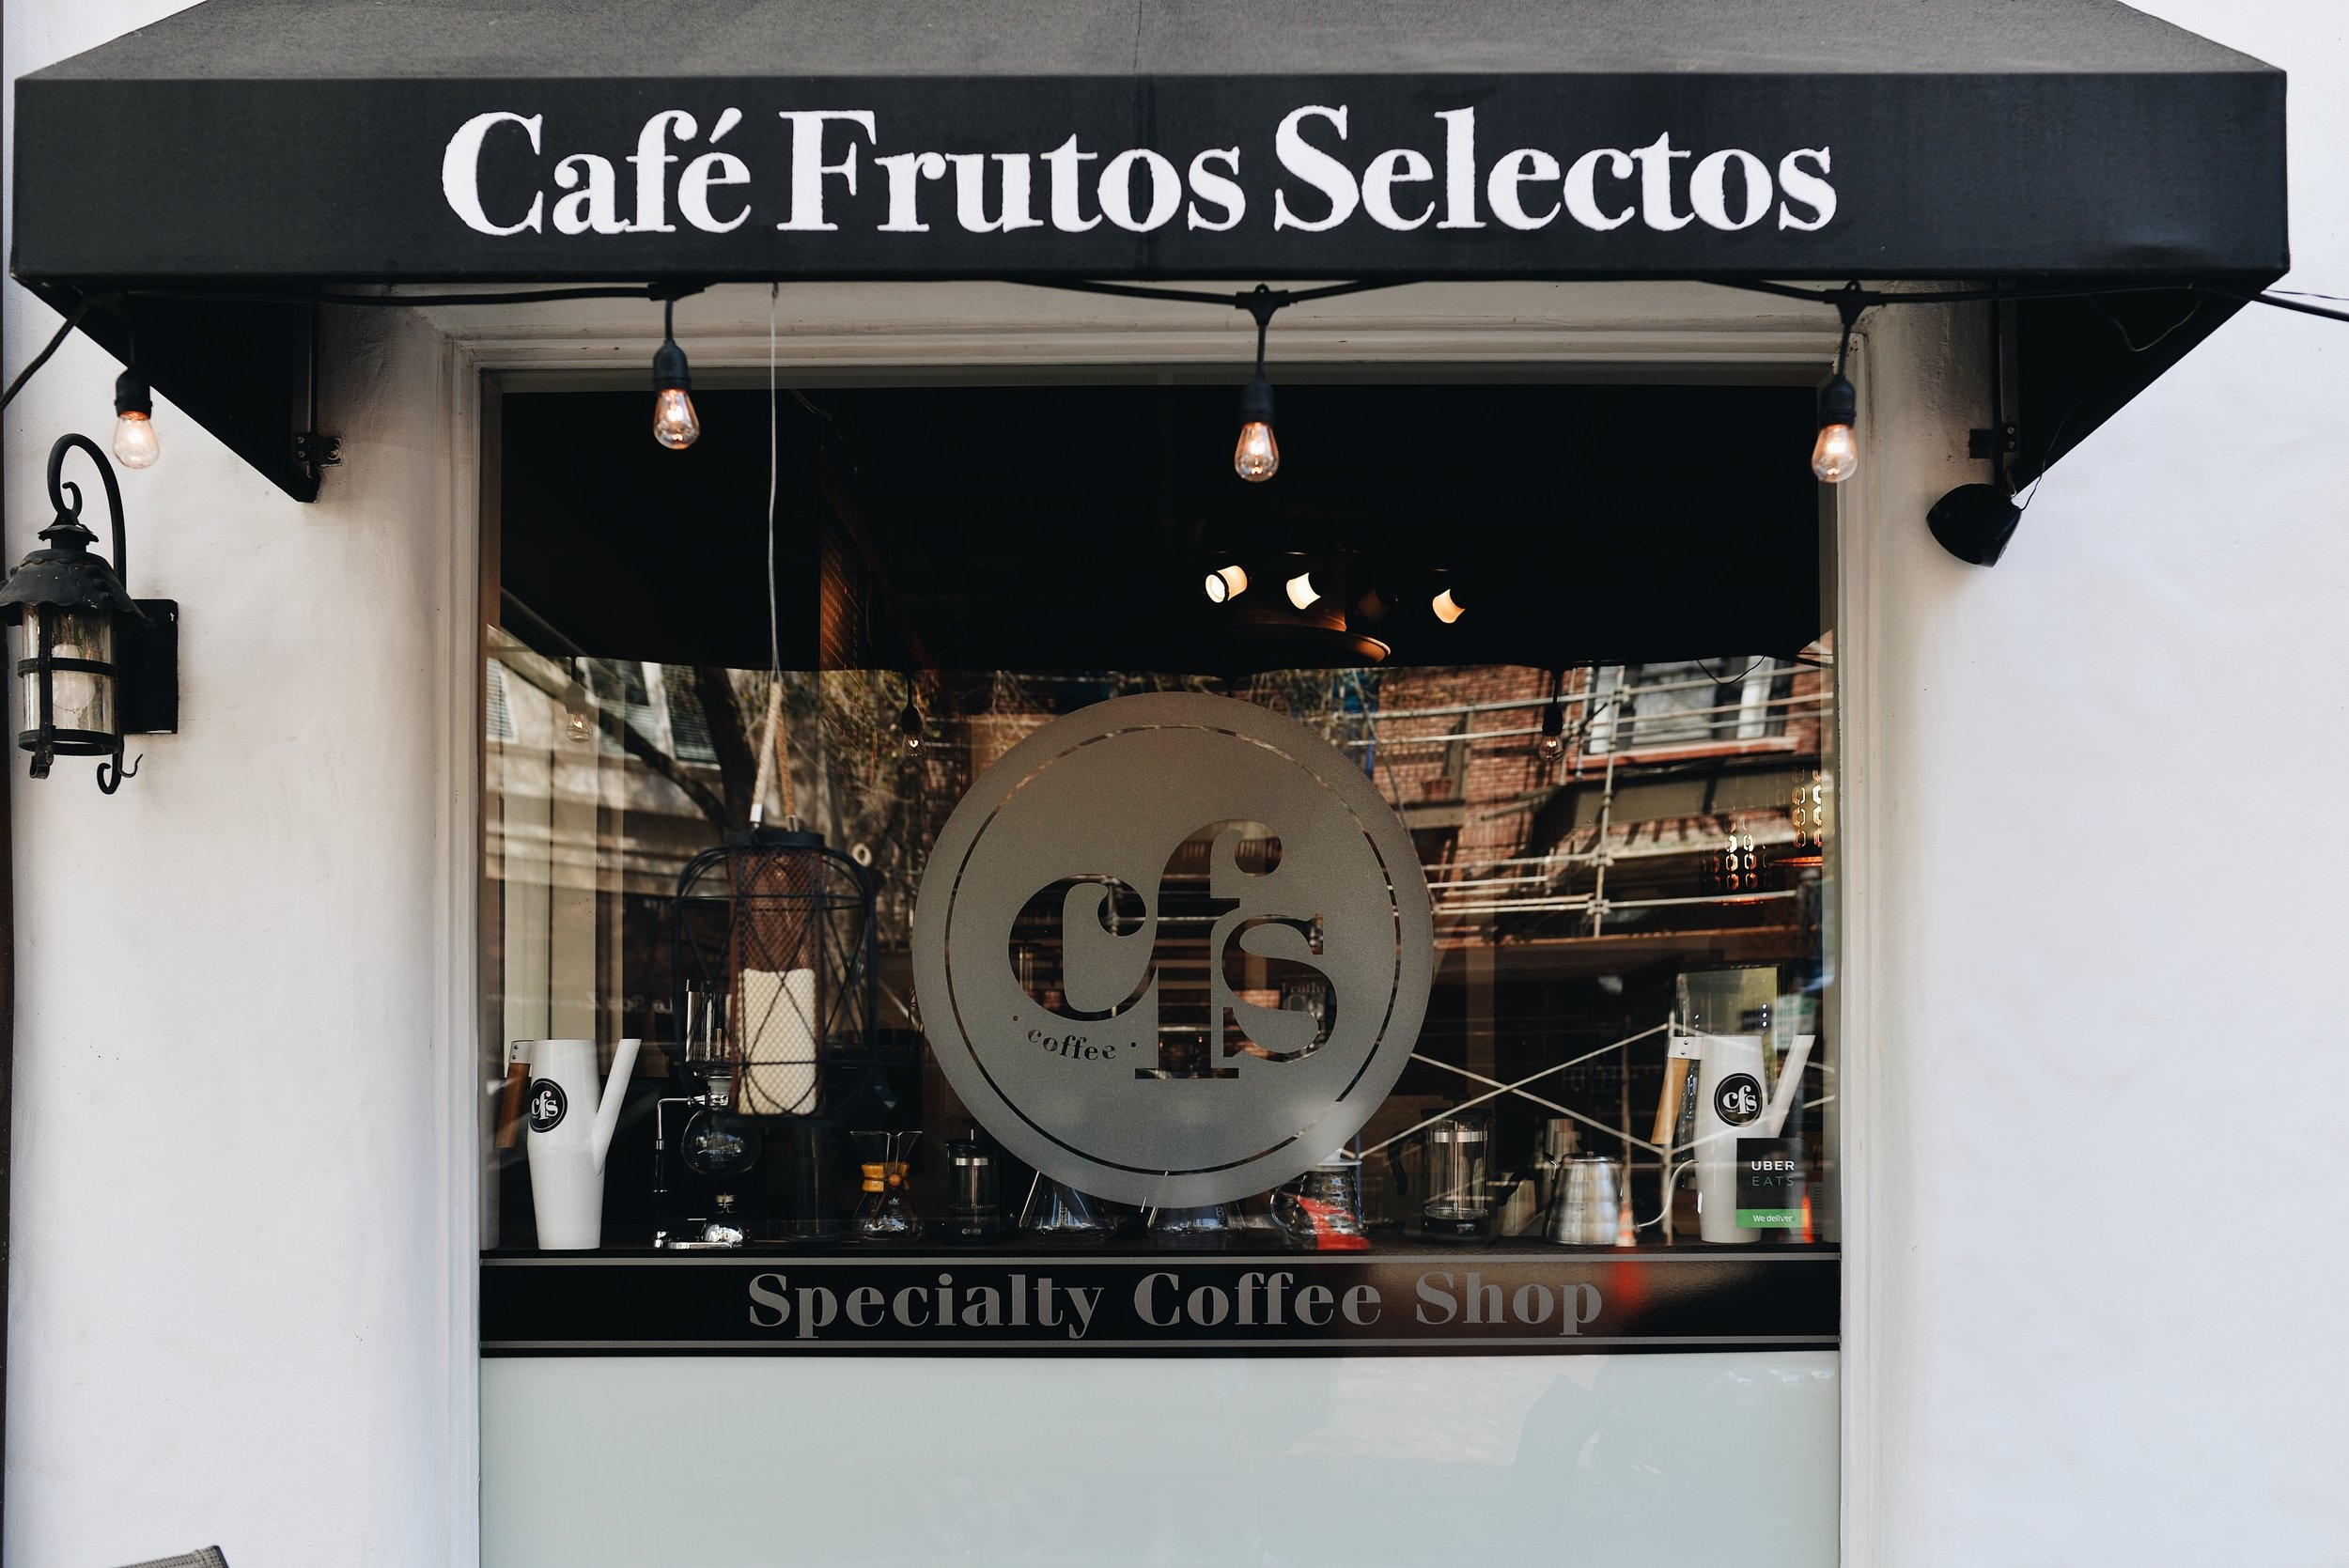 Café Frutos Selectos - 430 W New England Av. Suite A (1,188.51 mi)Winter Park, Florida 32789407.757.9510